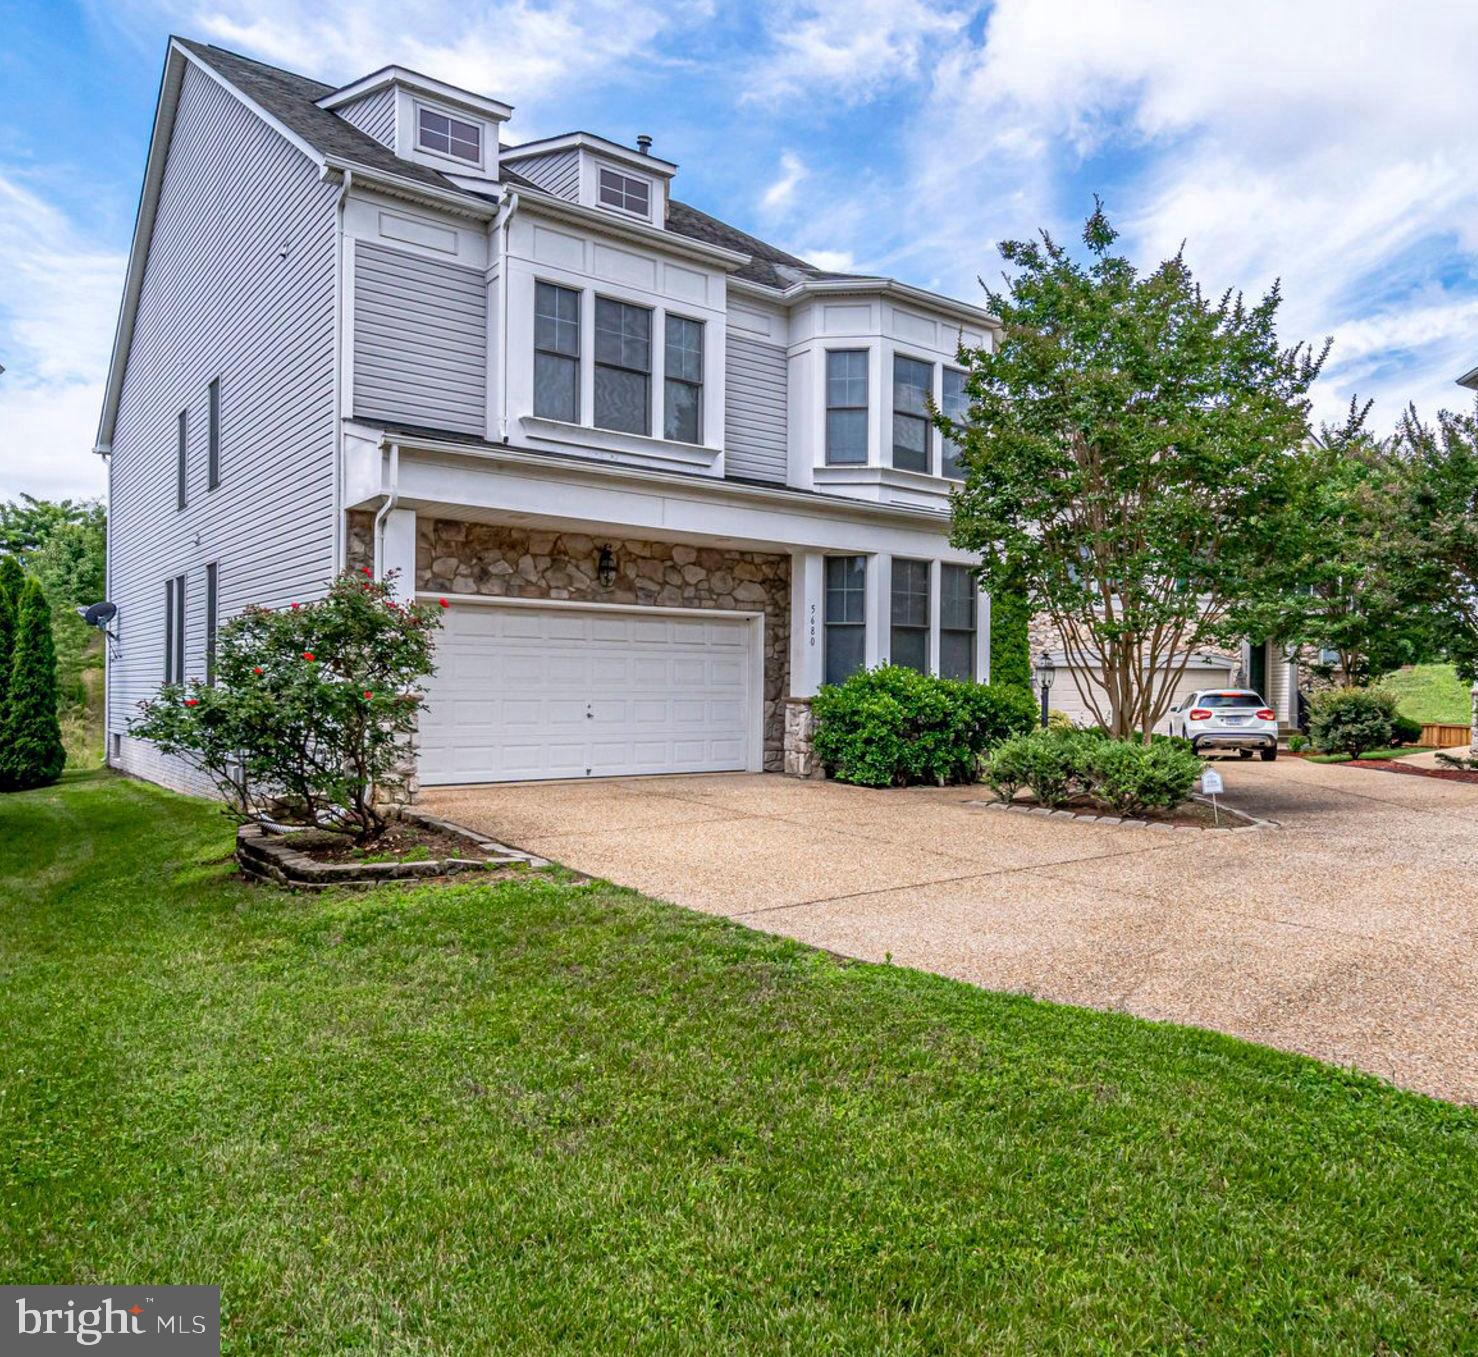 5680 TOWER HILL CIRCLE, ALEXANDRIA, VA 22315